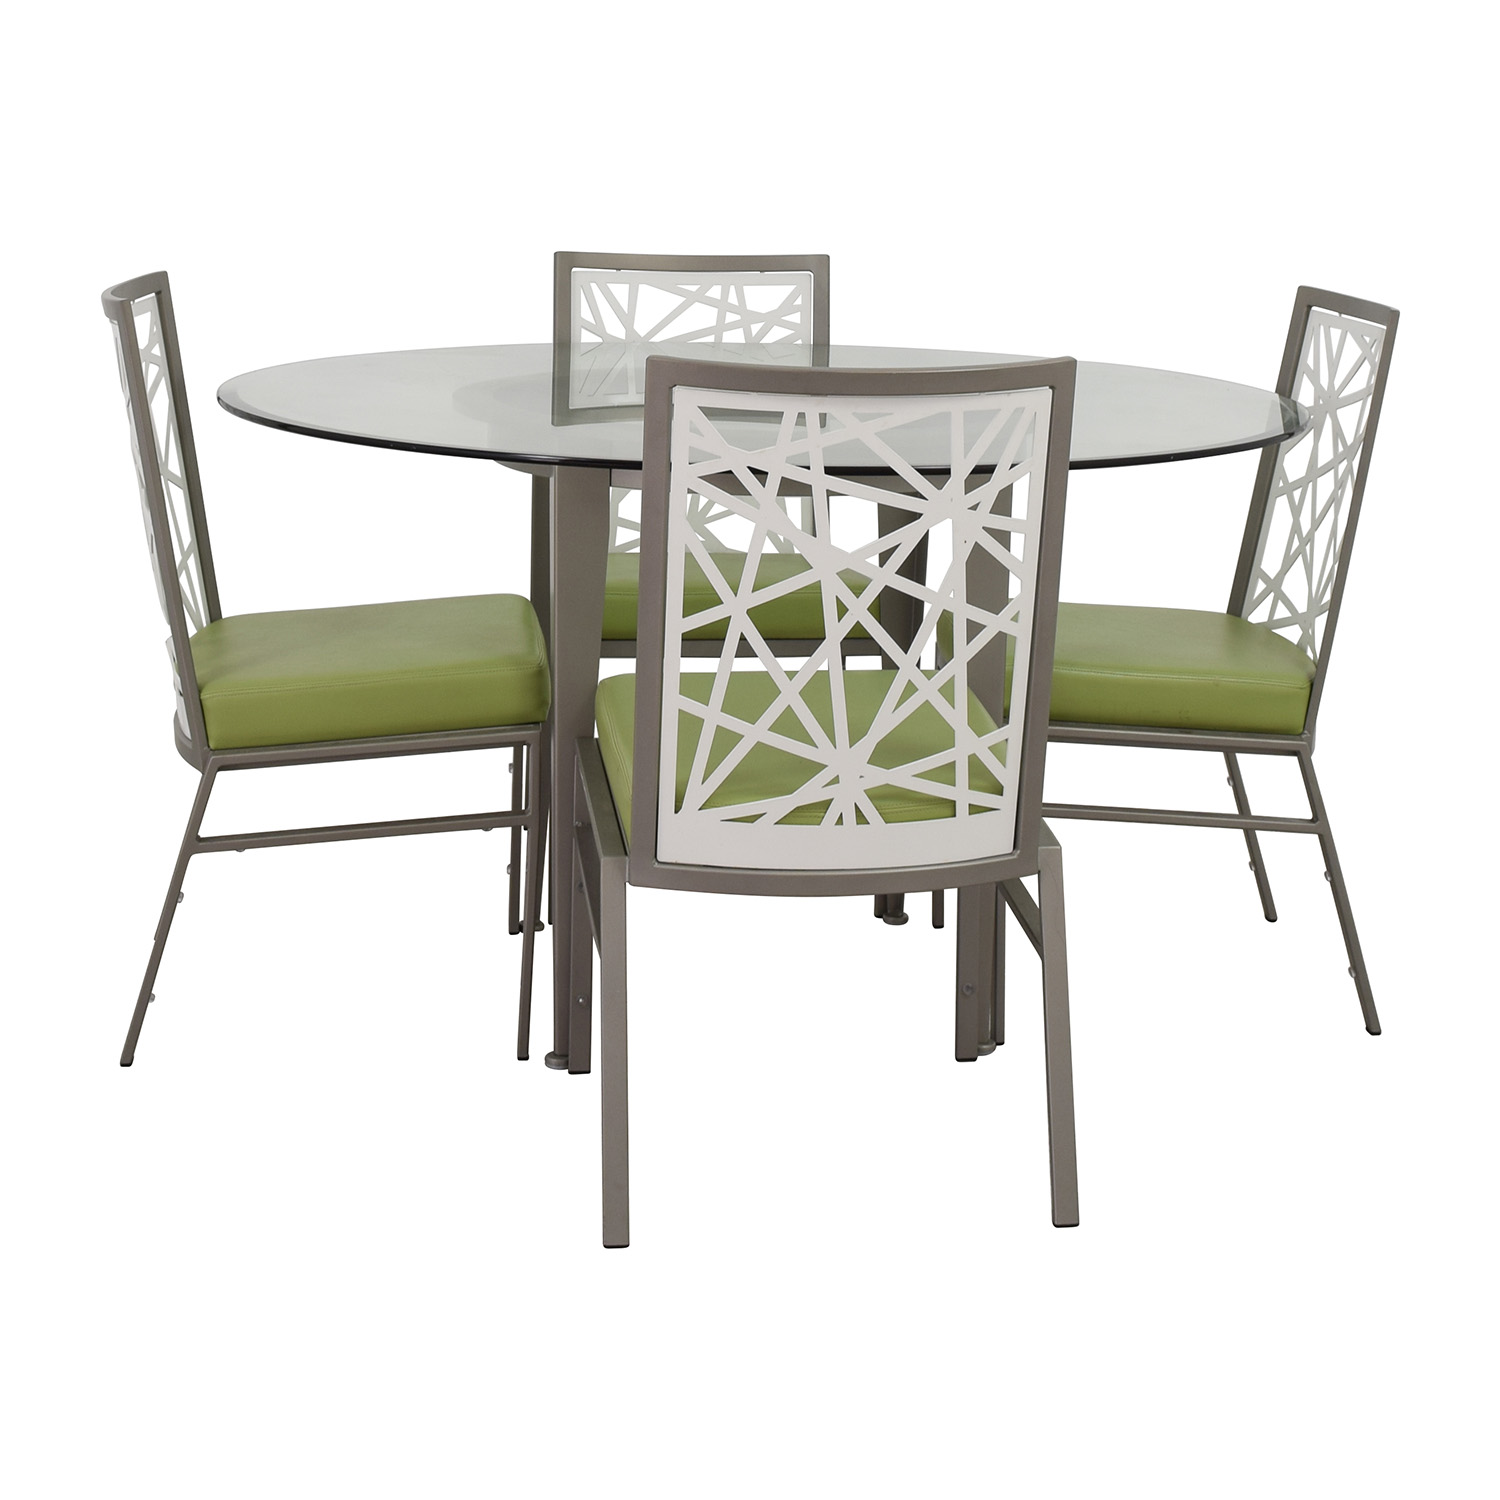 Modern Dining Set 90 Off Bif Furniture Bif Furniture Silver And Green Modern Dining Set Tables